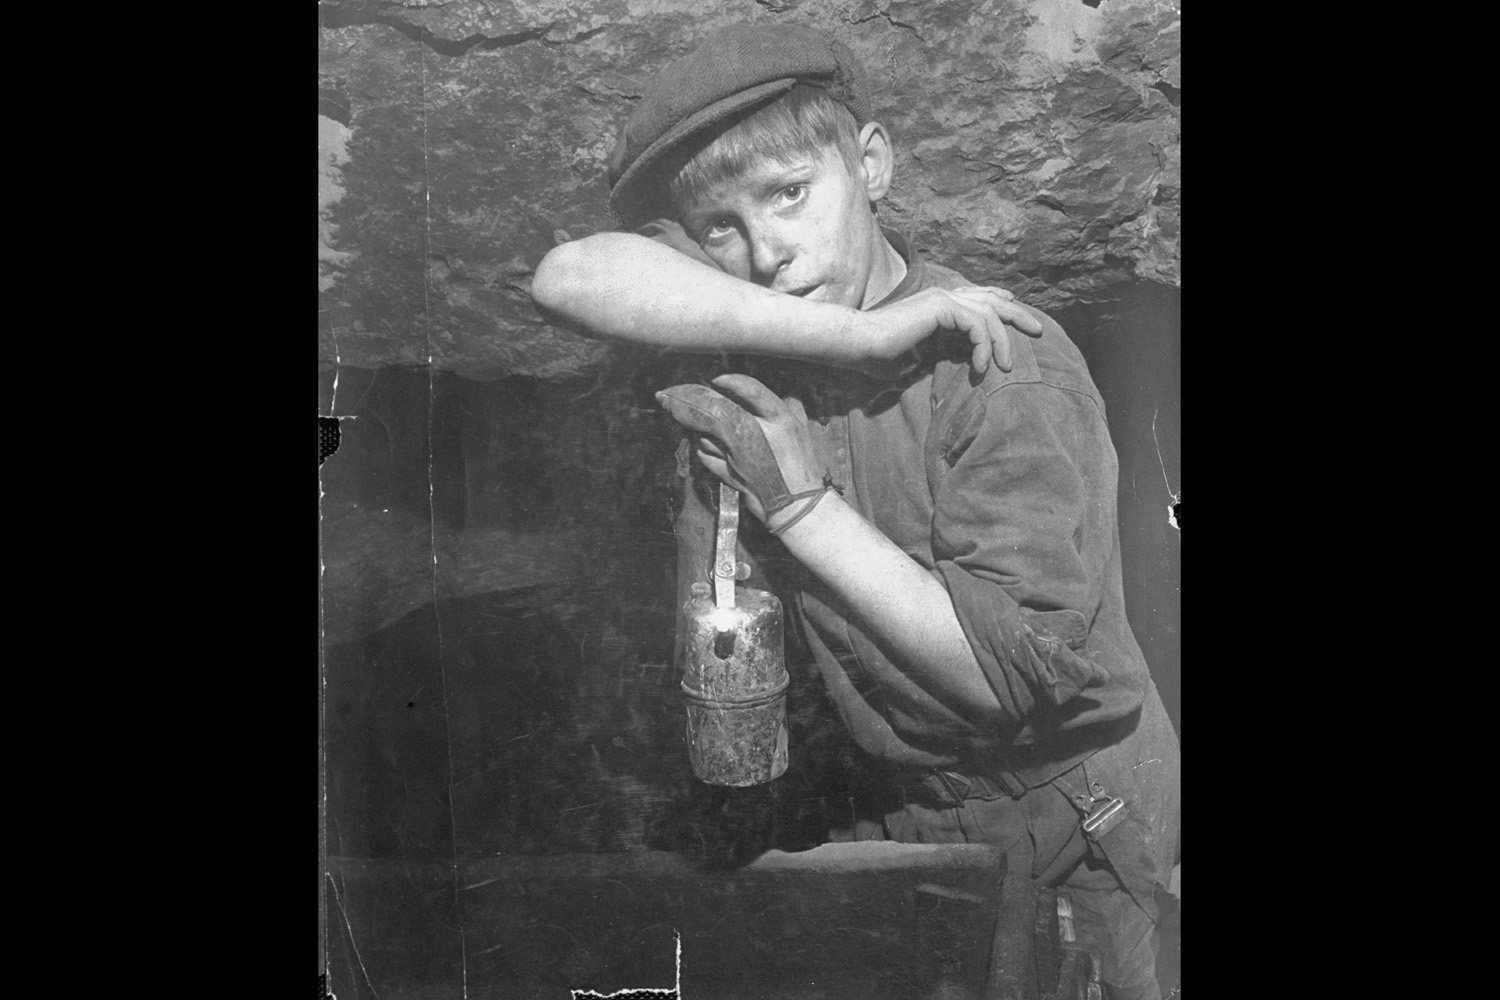 Young Welsh coal miner, 1943.